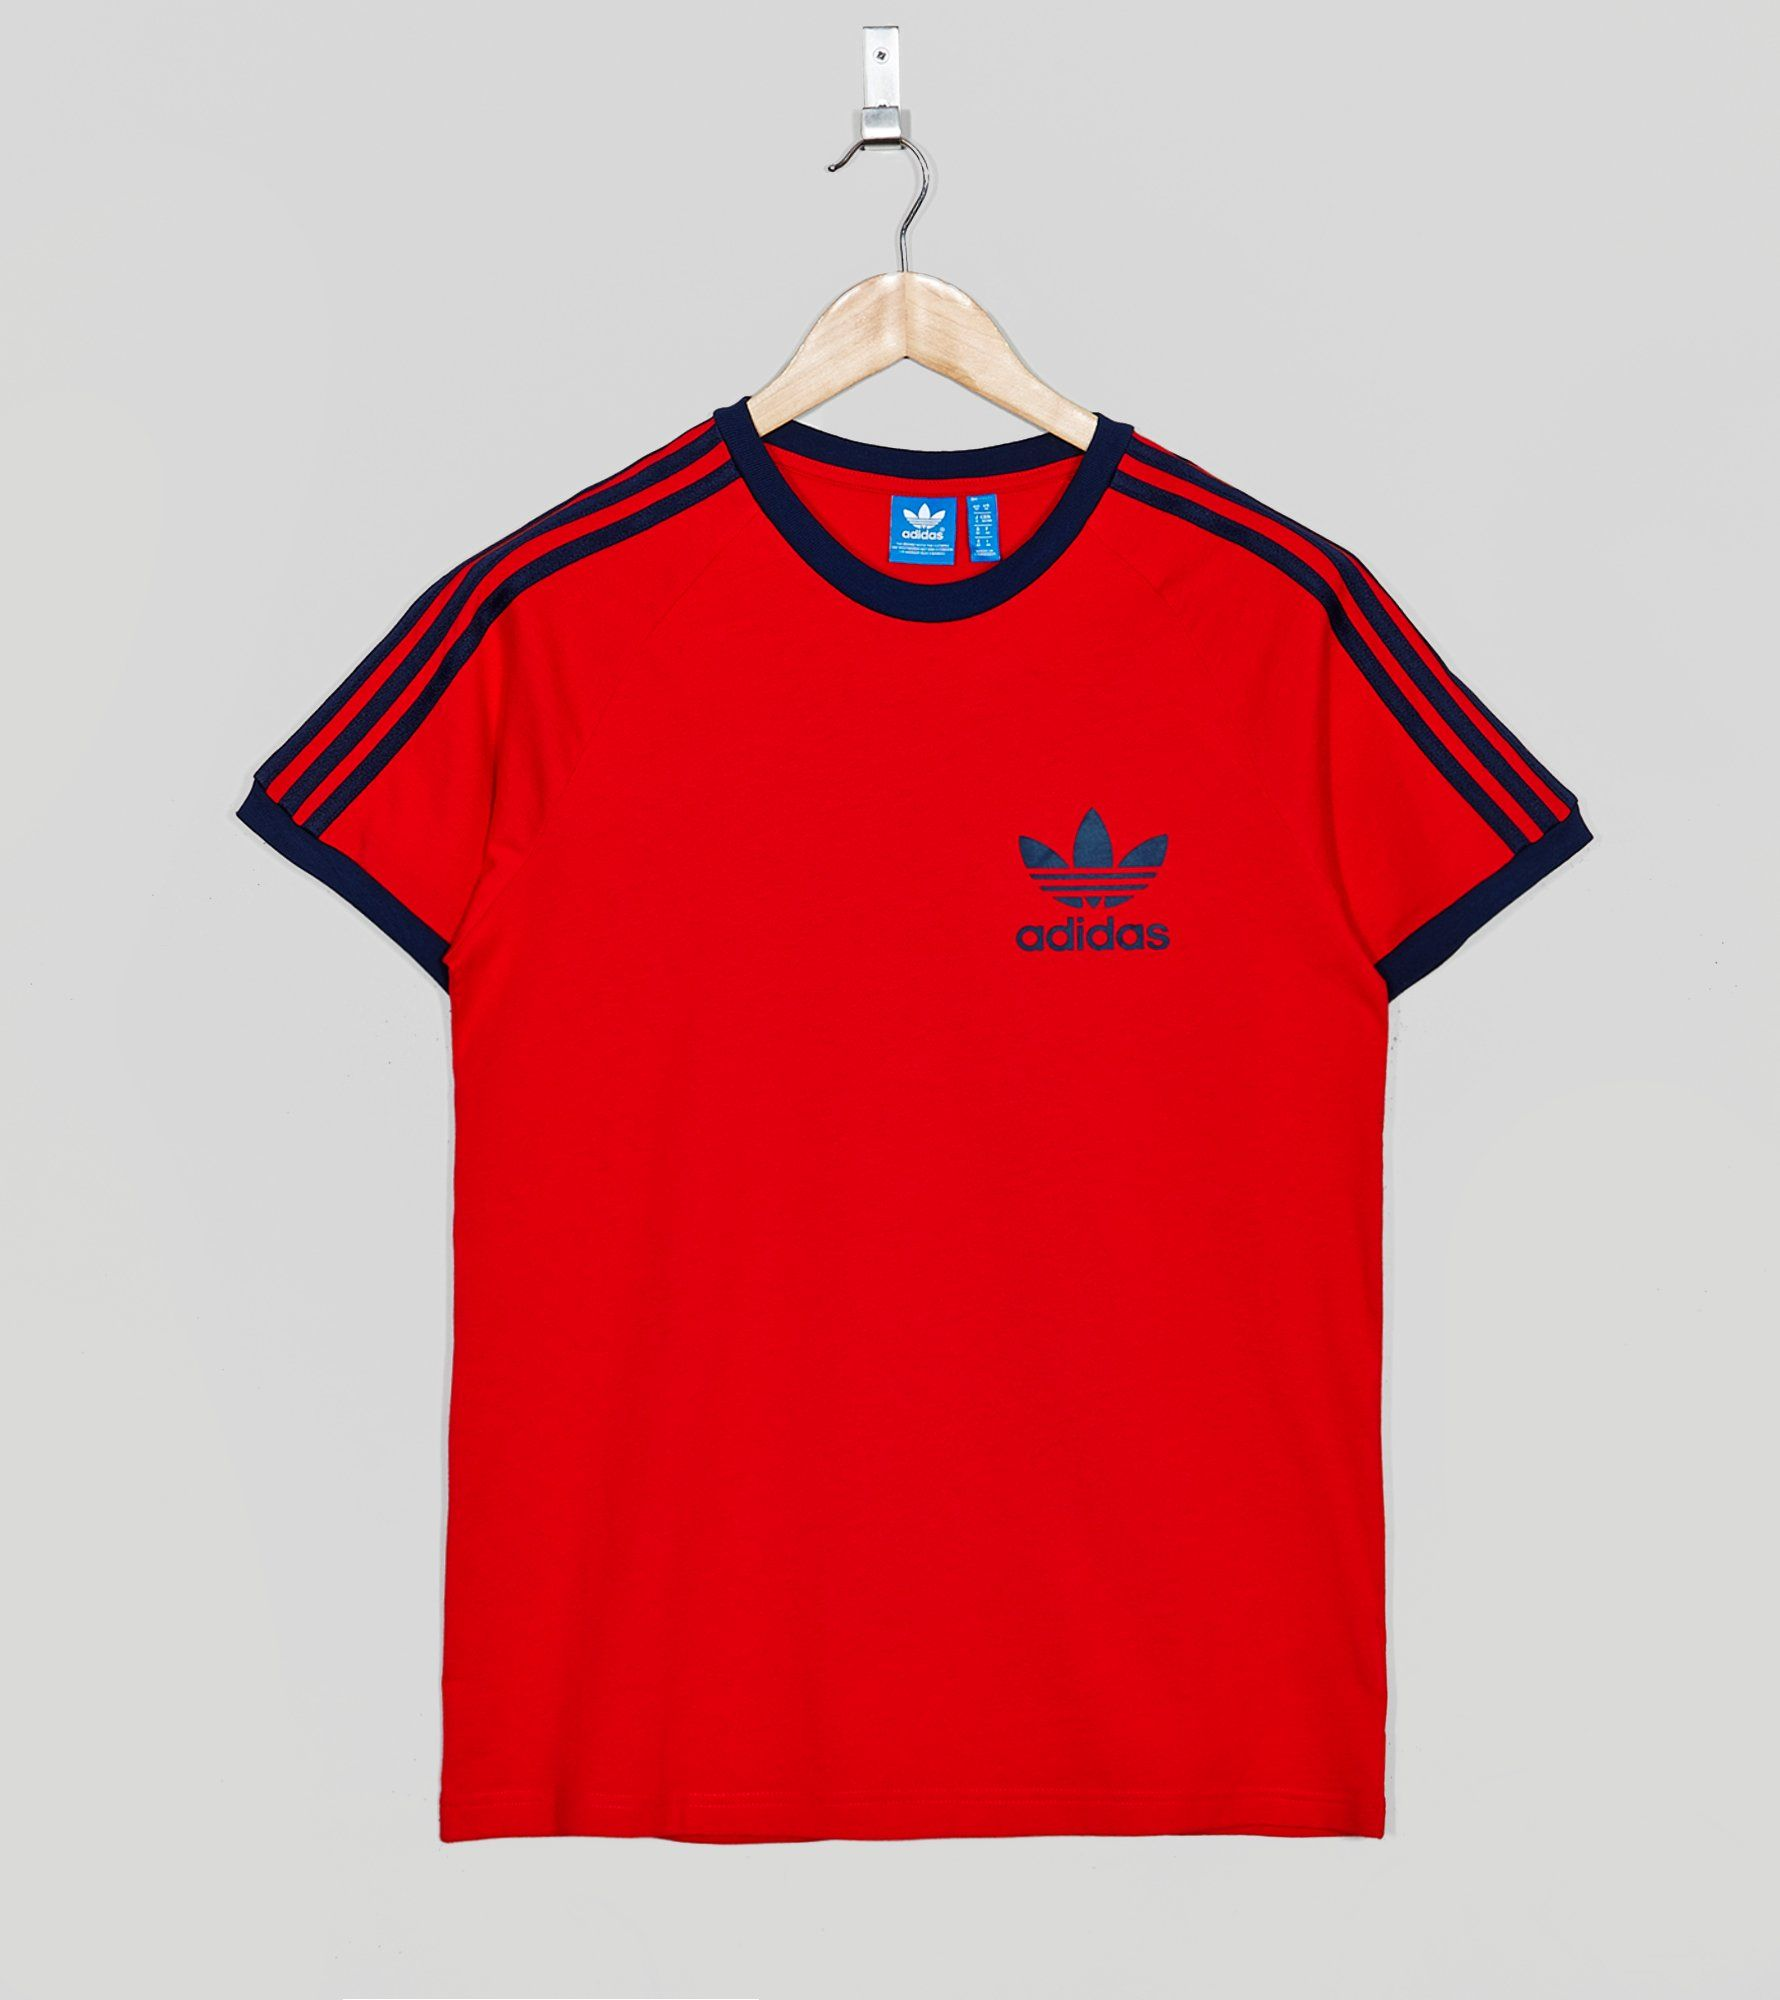 adidas originals california t shirt size. Black Bedroom Furniture Sets. Home Design Ideas